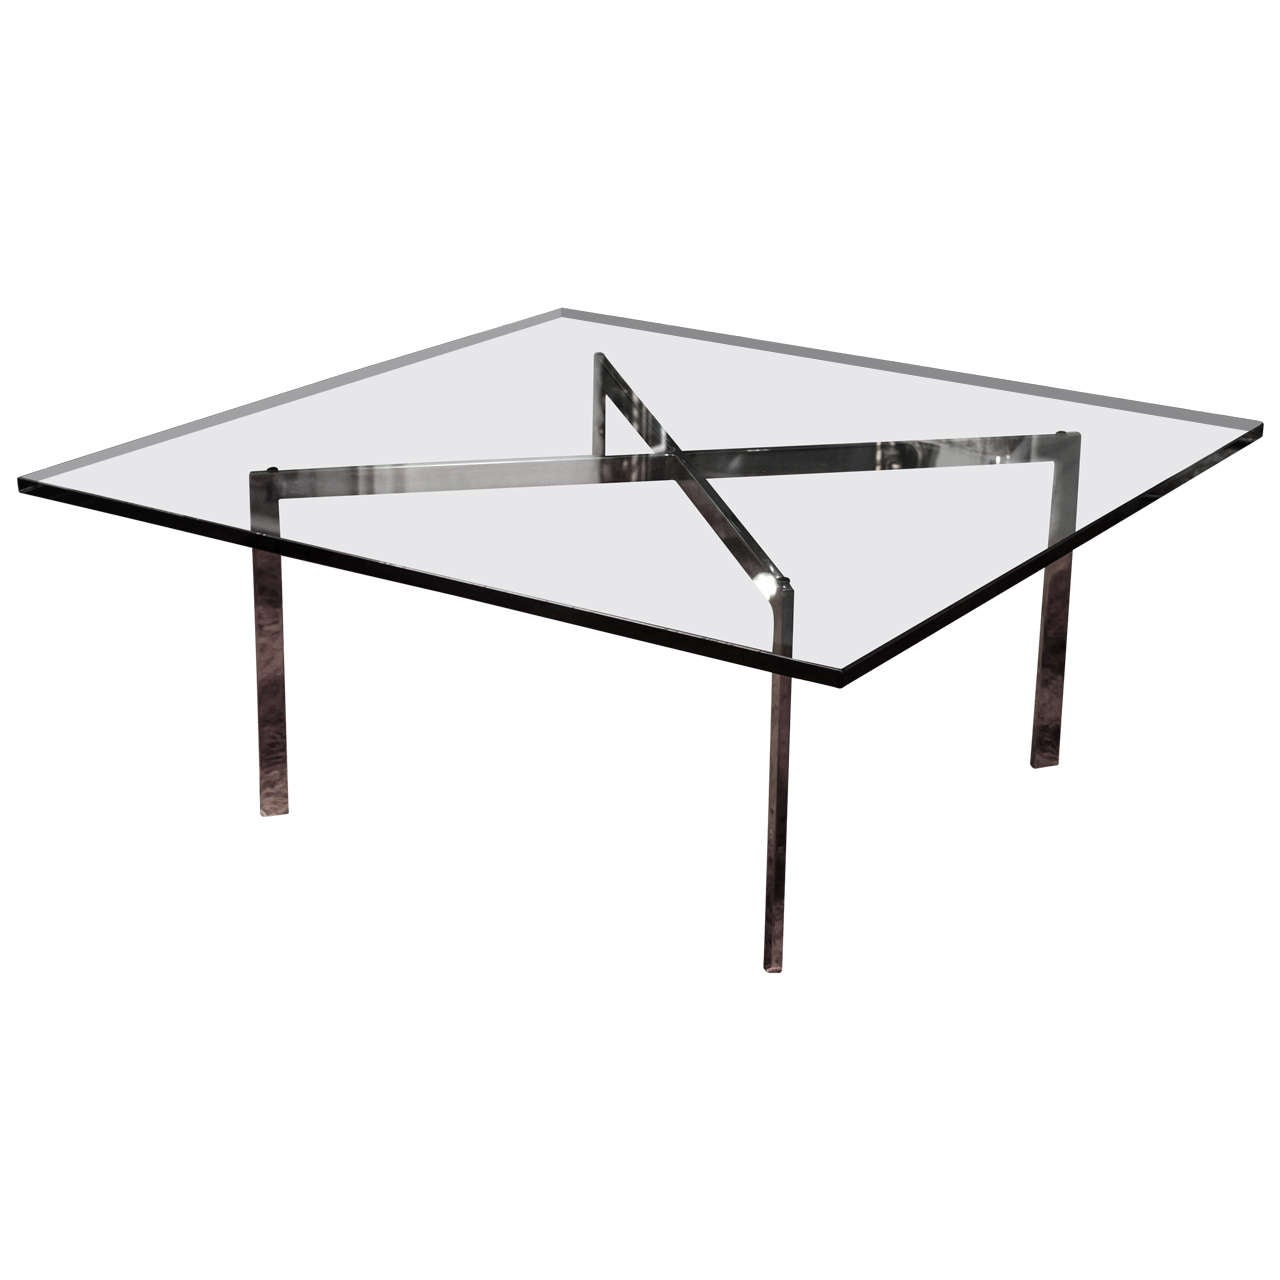 Ludwig mies van der rohe barcelona table by knoll at 1stdibs - Barcelona table knoll ...